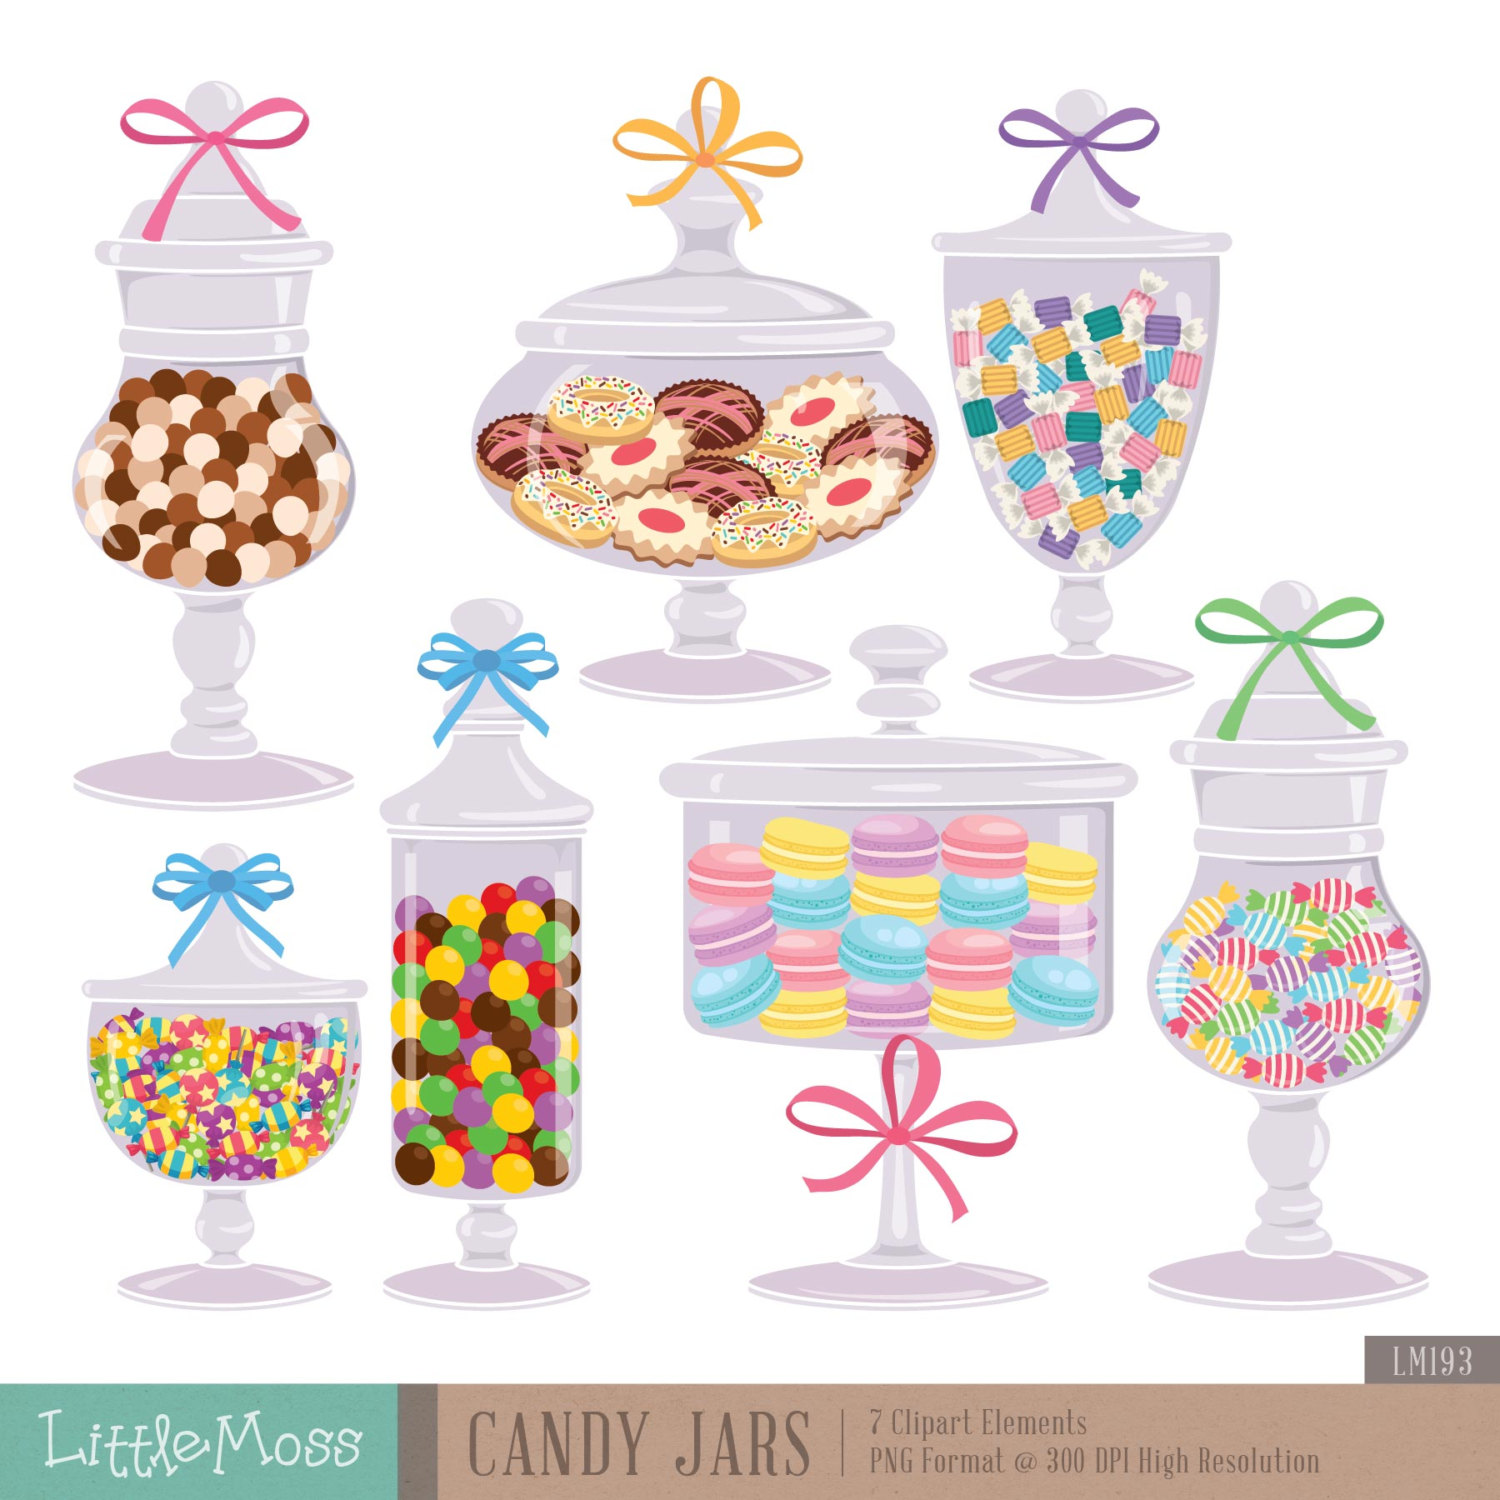 Sweet jar clipart 11 » Clipart Station.